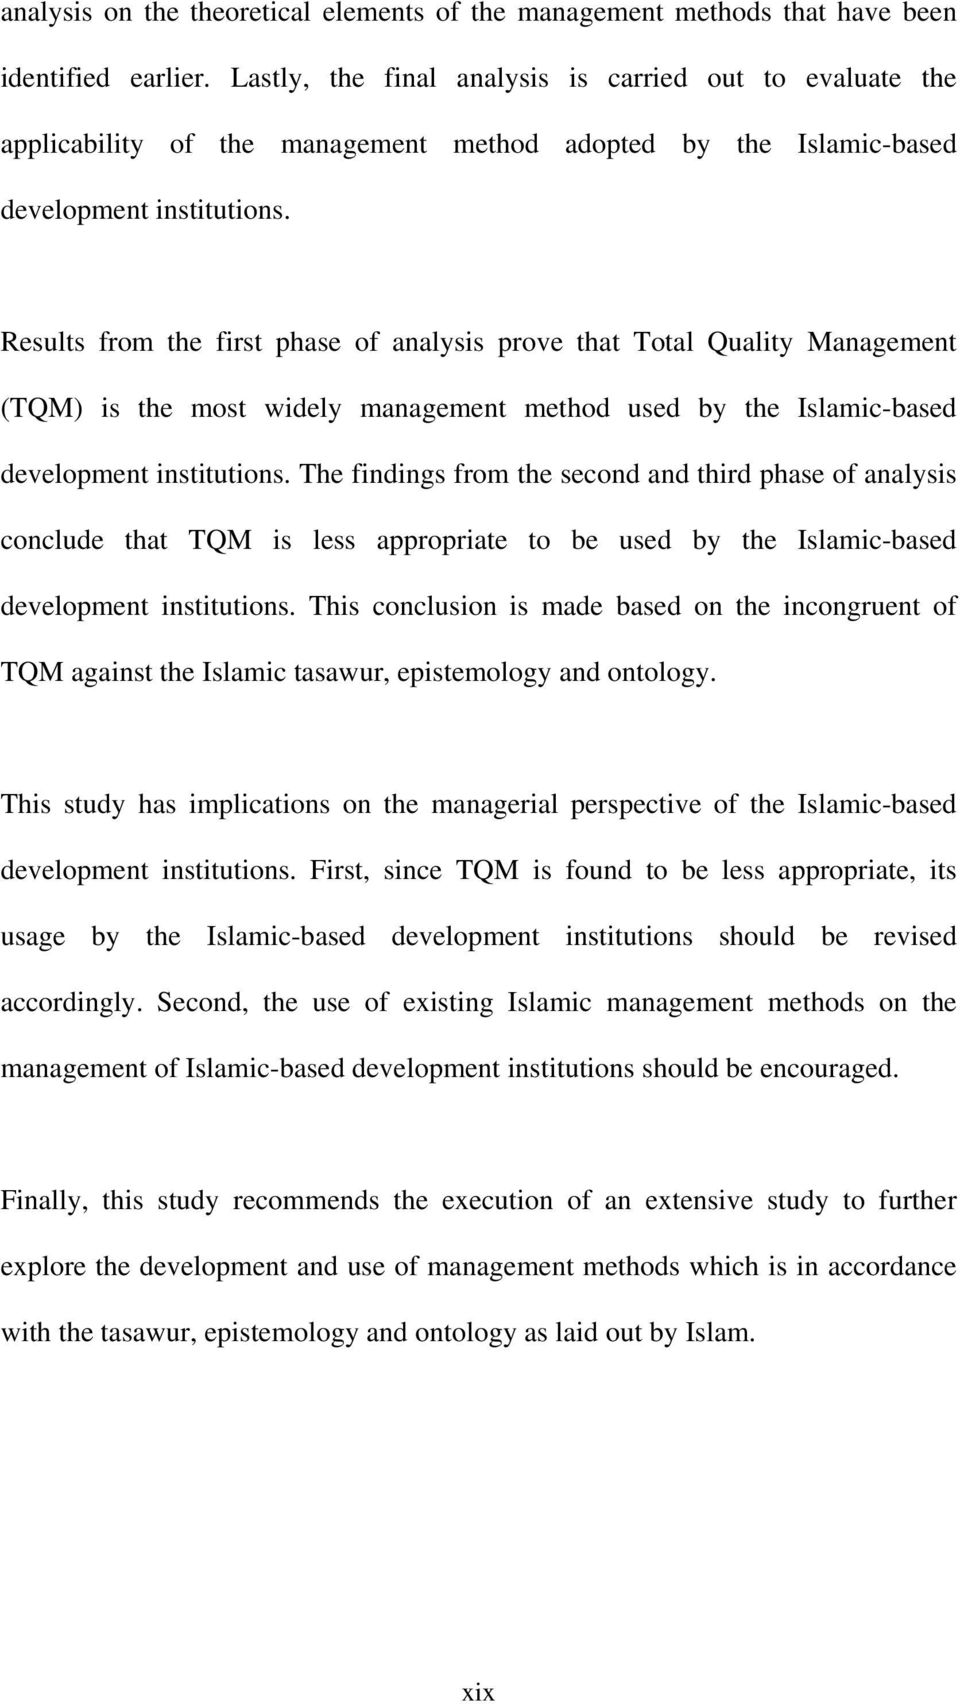 Results from the first phase of analysis prove that Total Quality Management (TQM) is the most widely management method used by the Islamic-based development institutions.